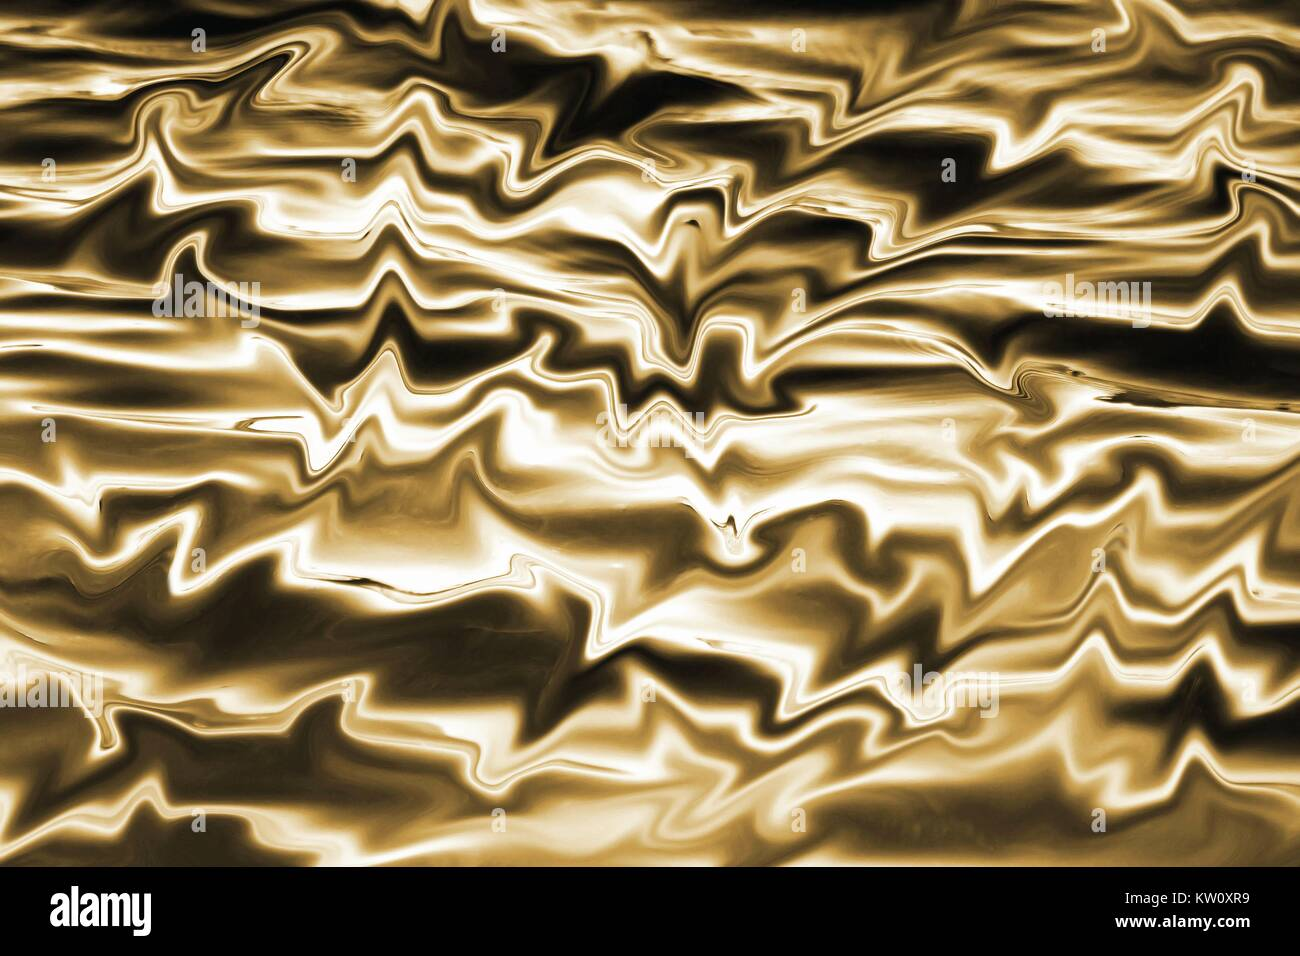 Melted Gold - abstract background Stock Photo